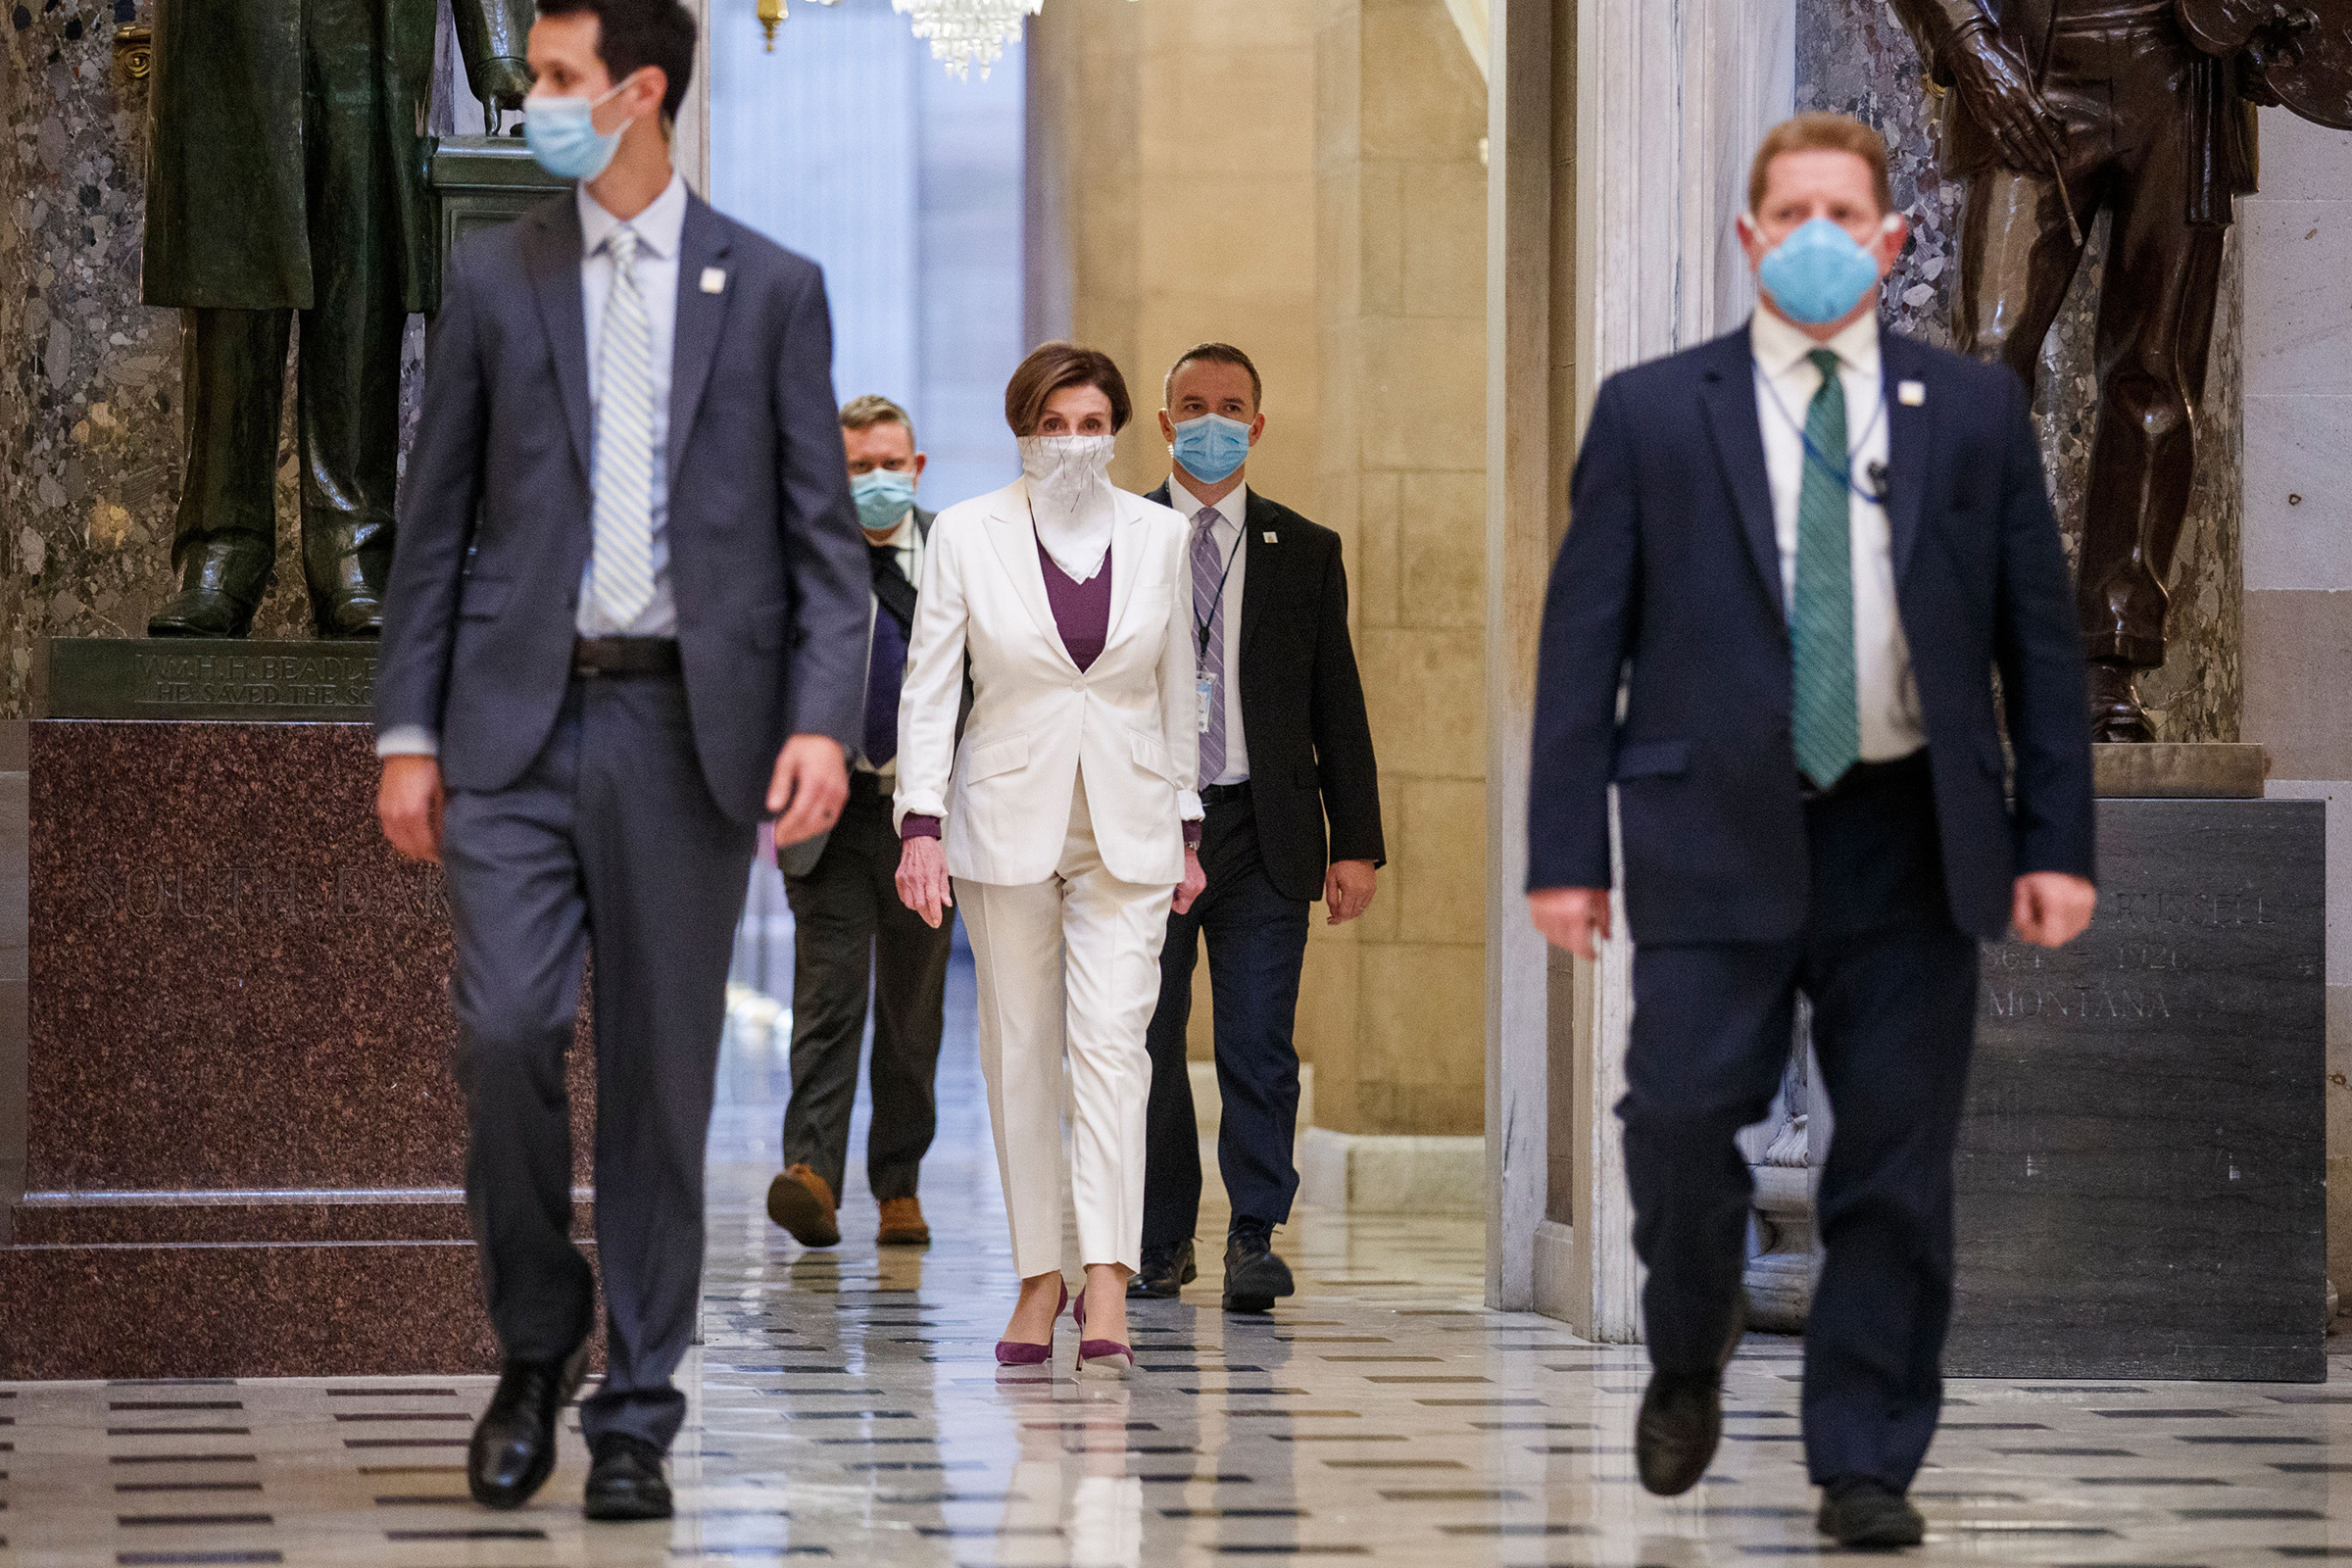 Pelosi in the U.S. Capitol on April 23, the day the House passed a $484 billion coronavirus relief package